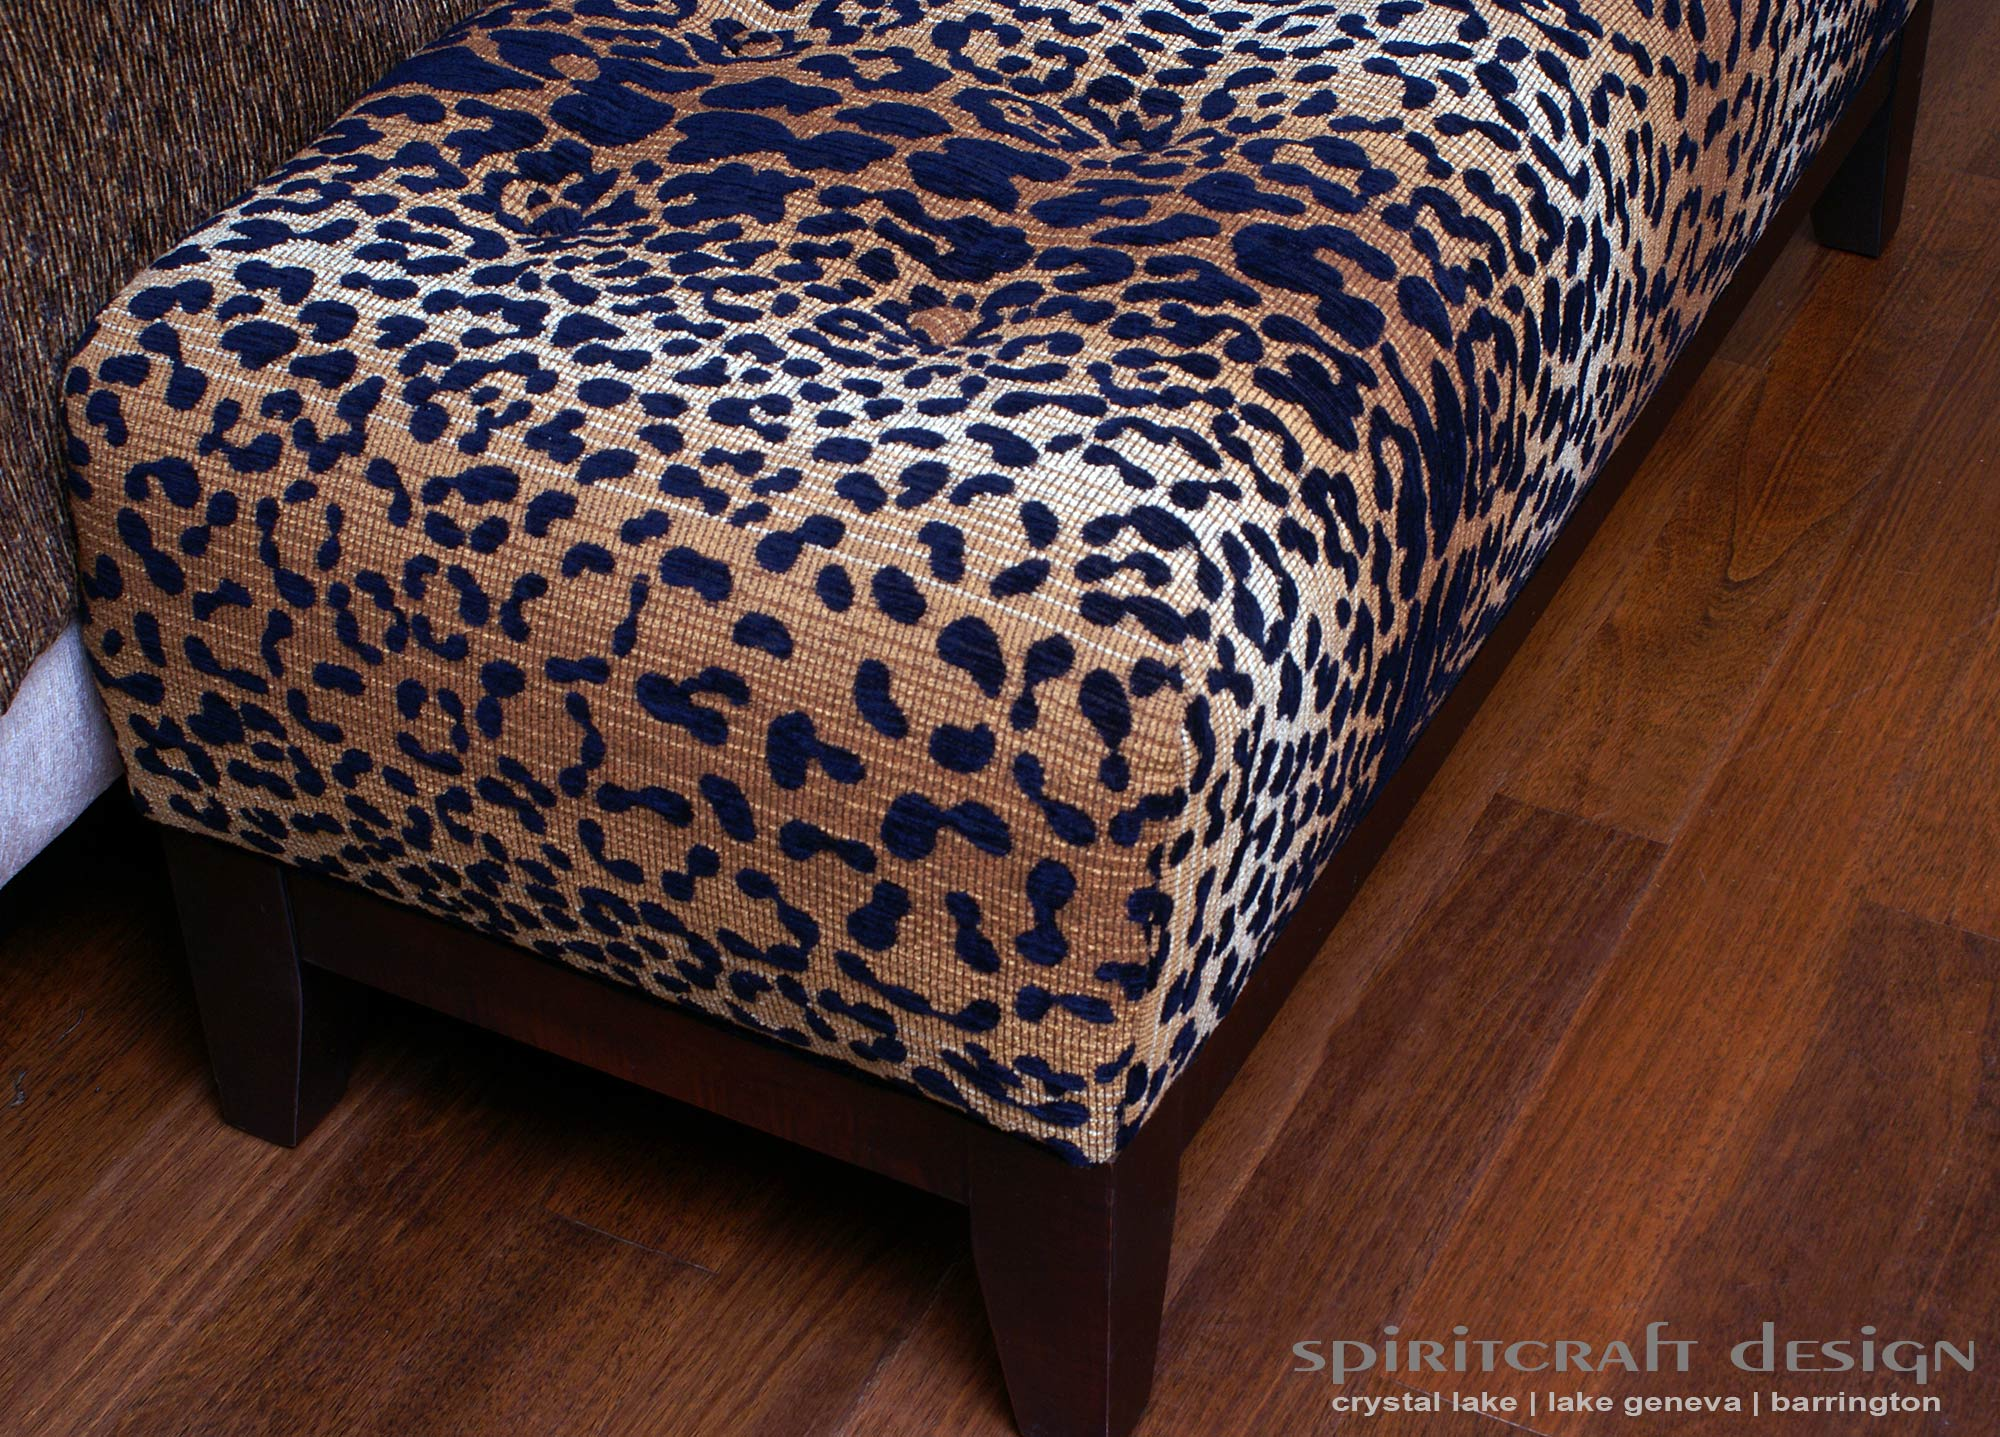 Custom Upholstered Furniture Makers #15: Custom Upholstered Bedroom Bench In Lincoln Park By Spiritcraft Interior Design Of Crystal Lake And Barrington